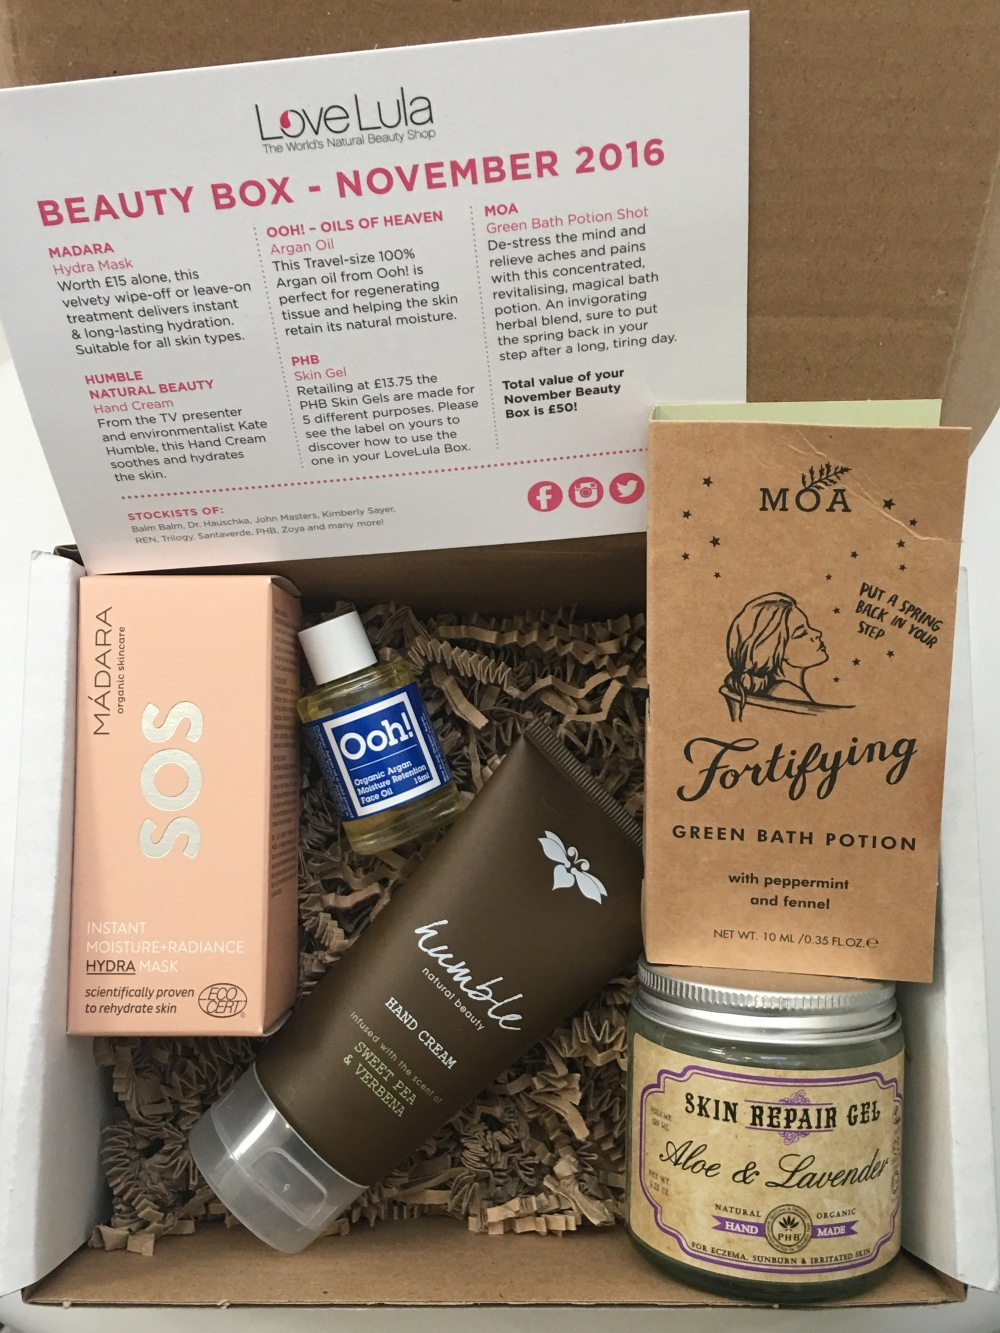 LoveLula Beauty Box November 2016